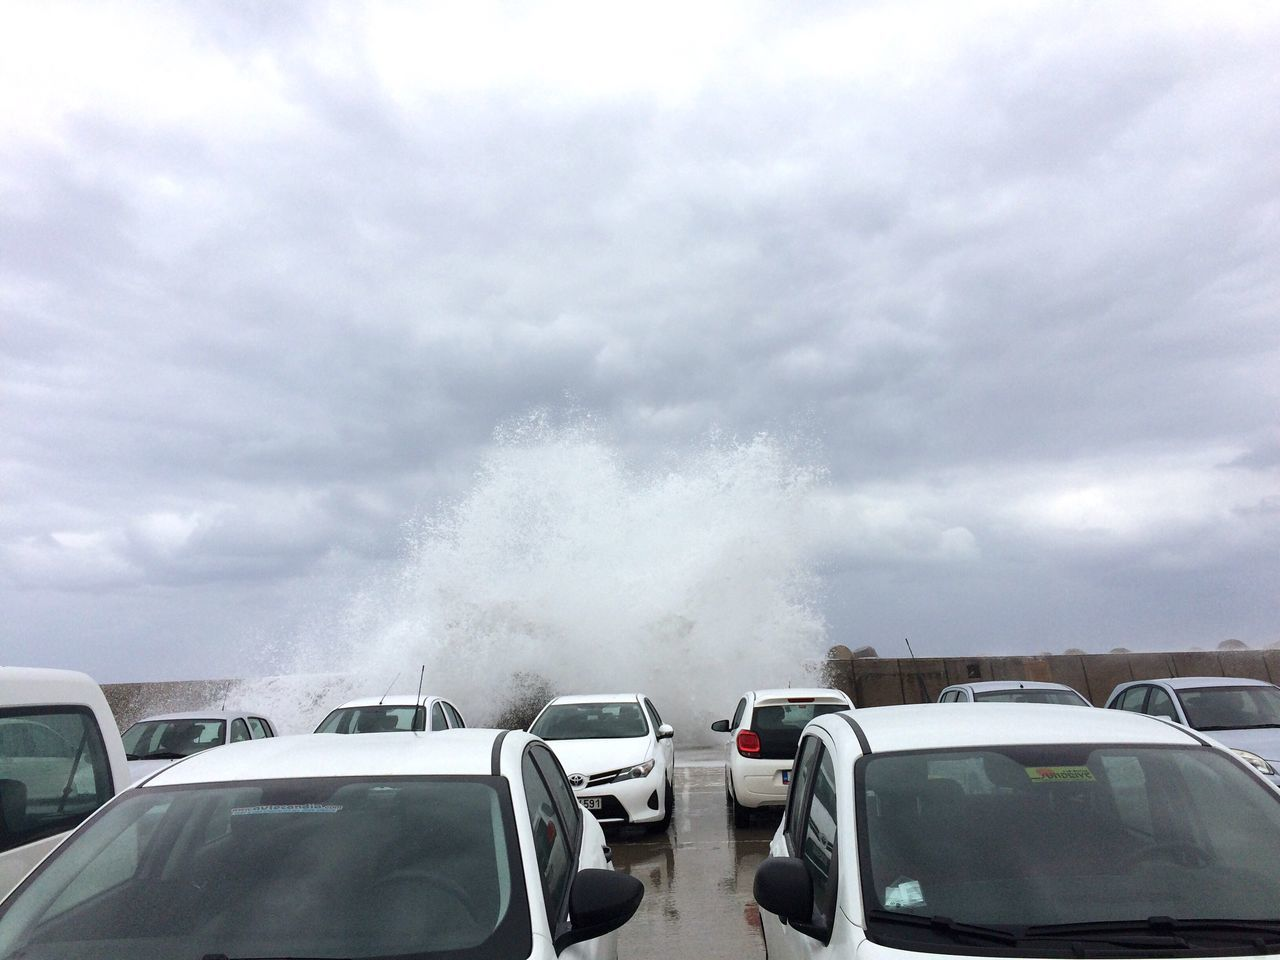 Car Parking Parking Lot Coast Stormy Weather Sea Sea And Sky Waves Ocean Spray Cloud - Sky Day No People Noise Roaring Many Objects White Car Power Of Nature